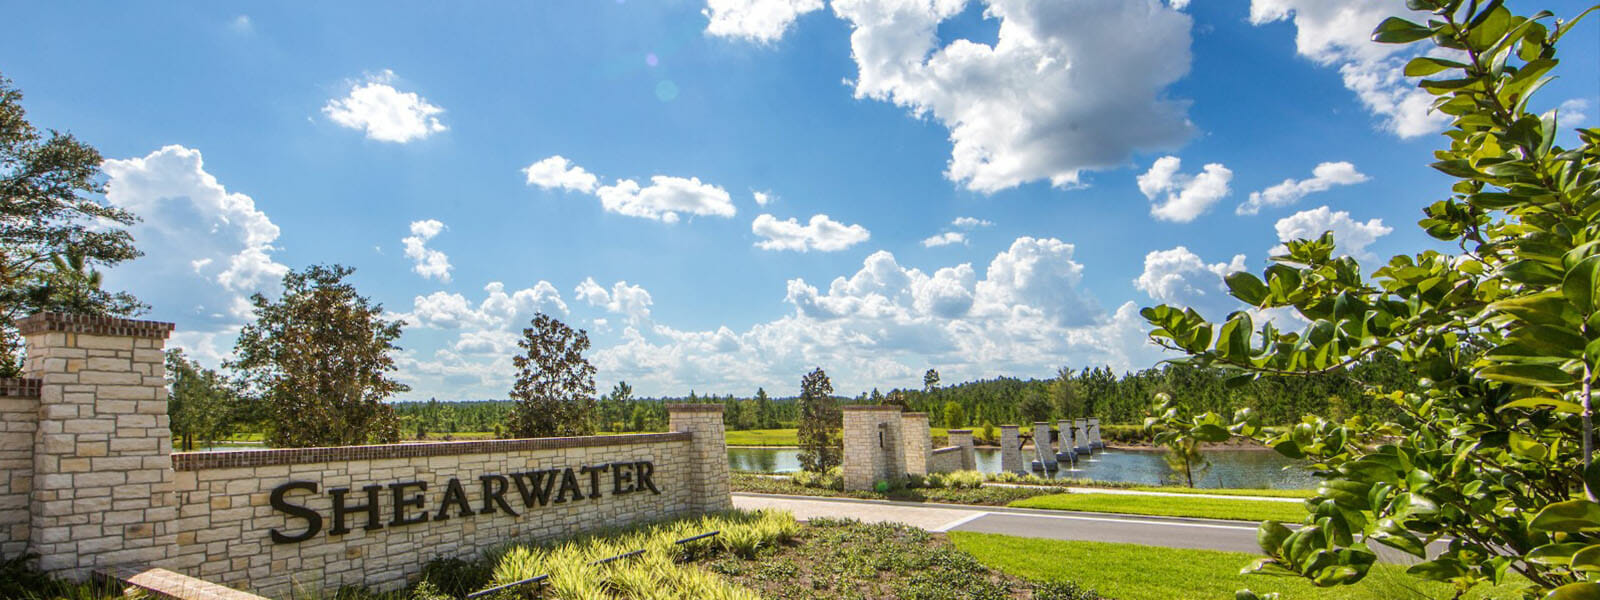 Lakeside Community St. Augustine FL | Shearwater Freehold Communities